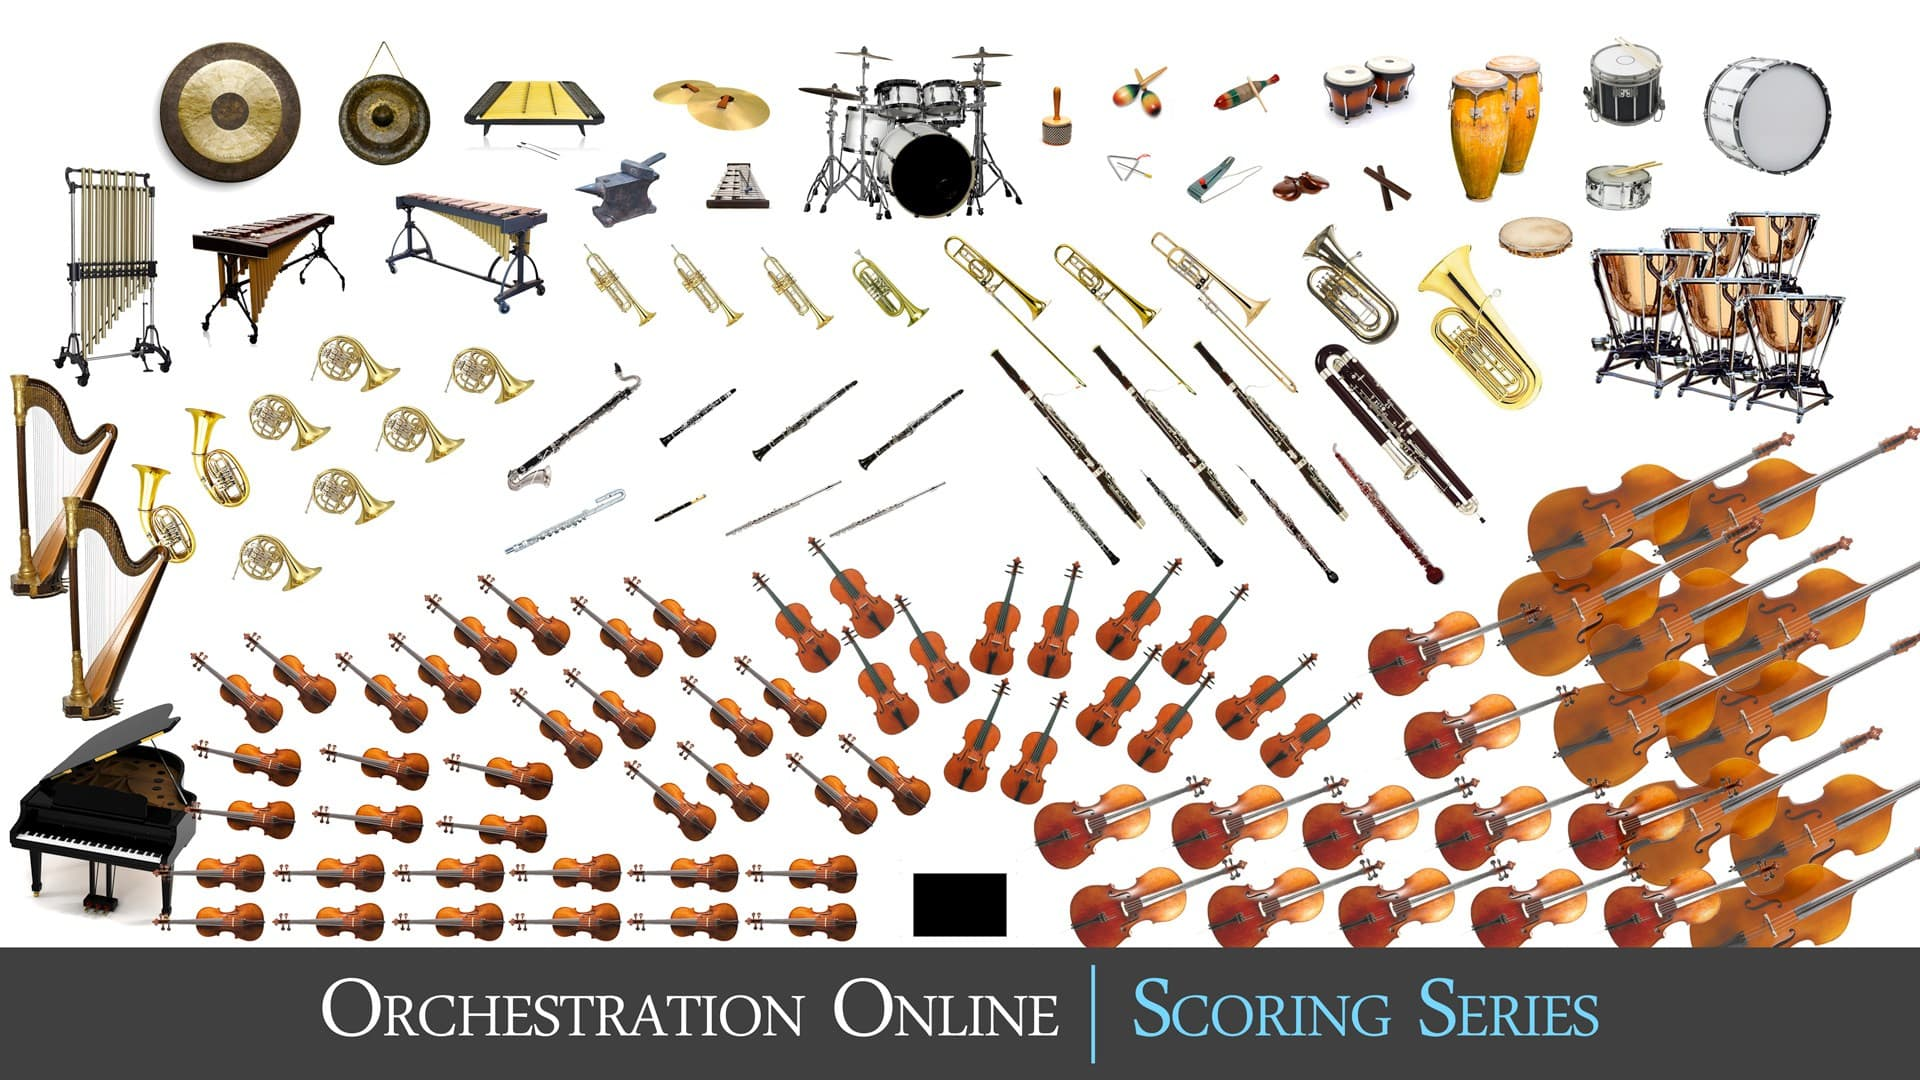 Orchestration Online Scoring Series